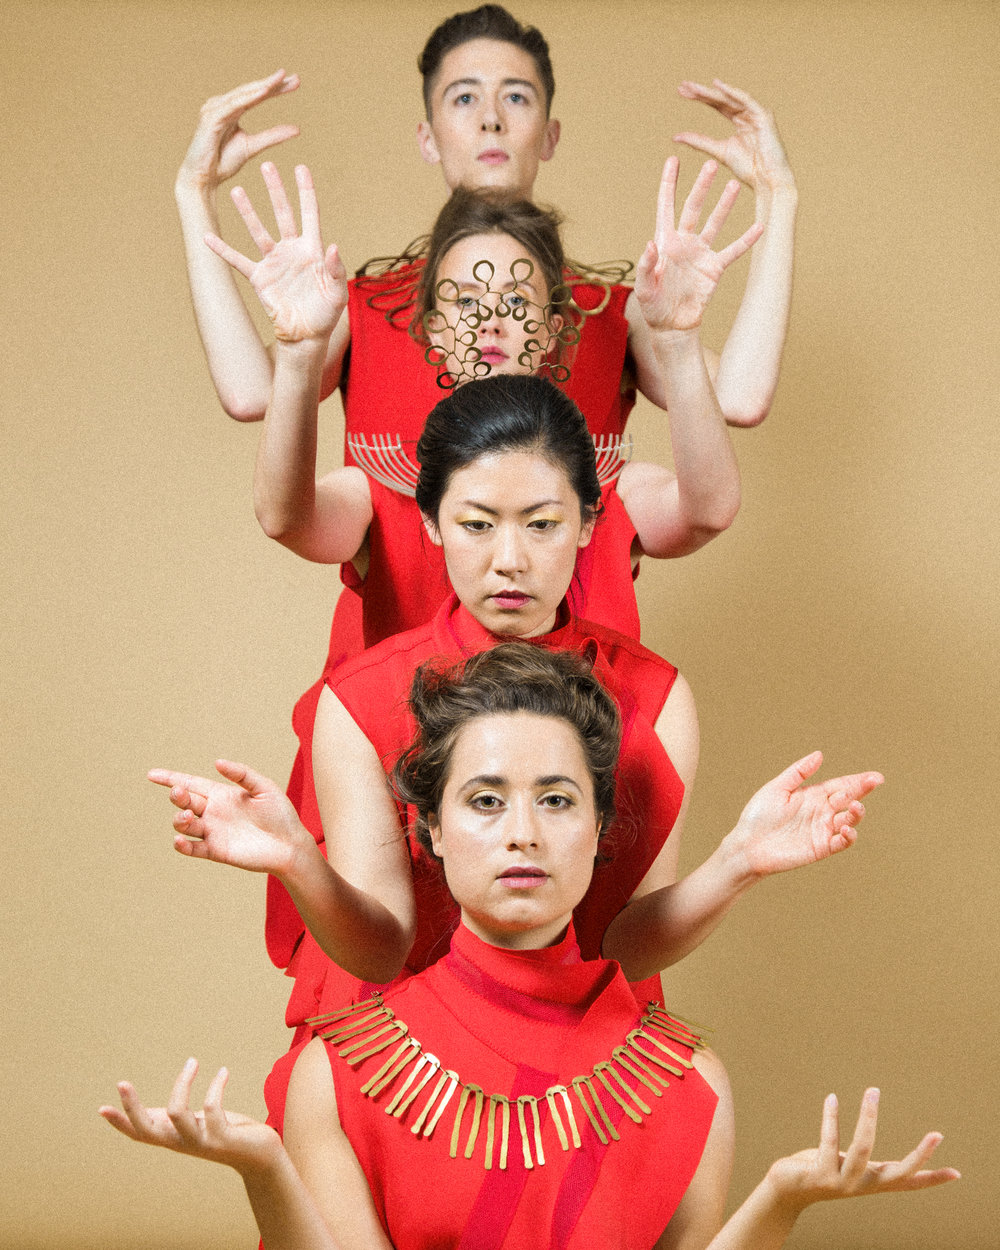 Dancers: Charlie Ashwell, Iris Chan, Janine Harrington & James Morgan